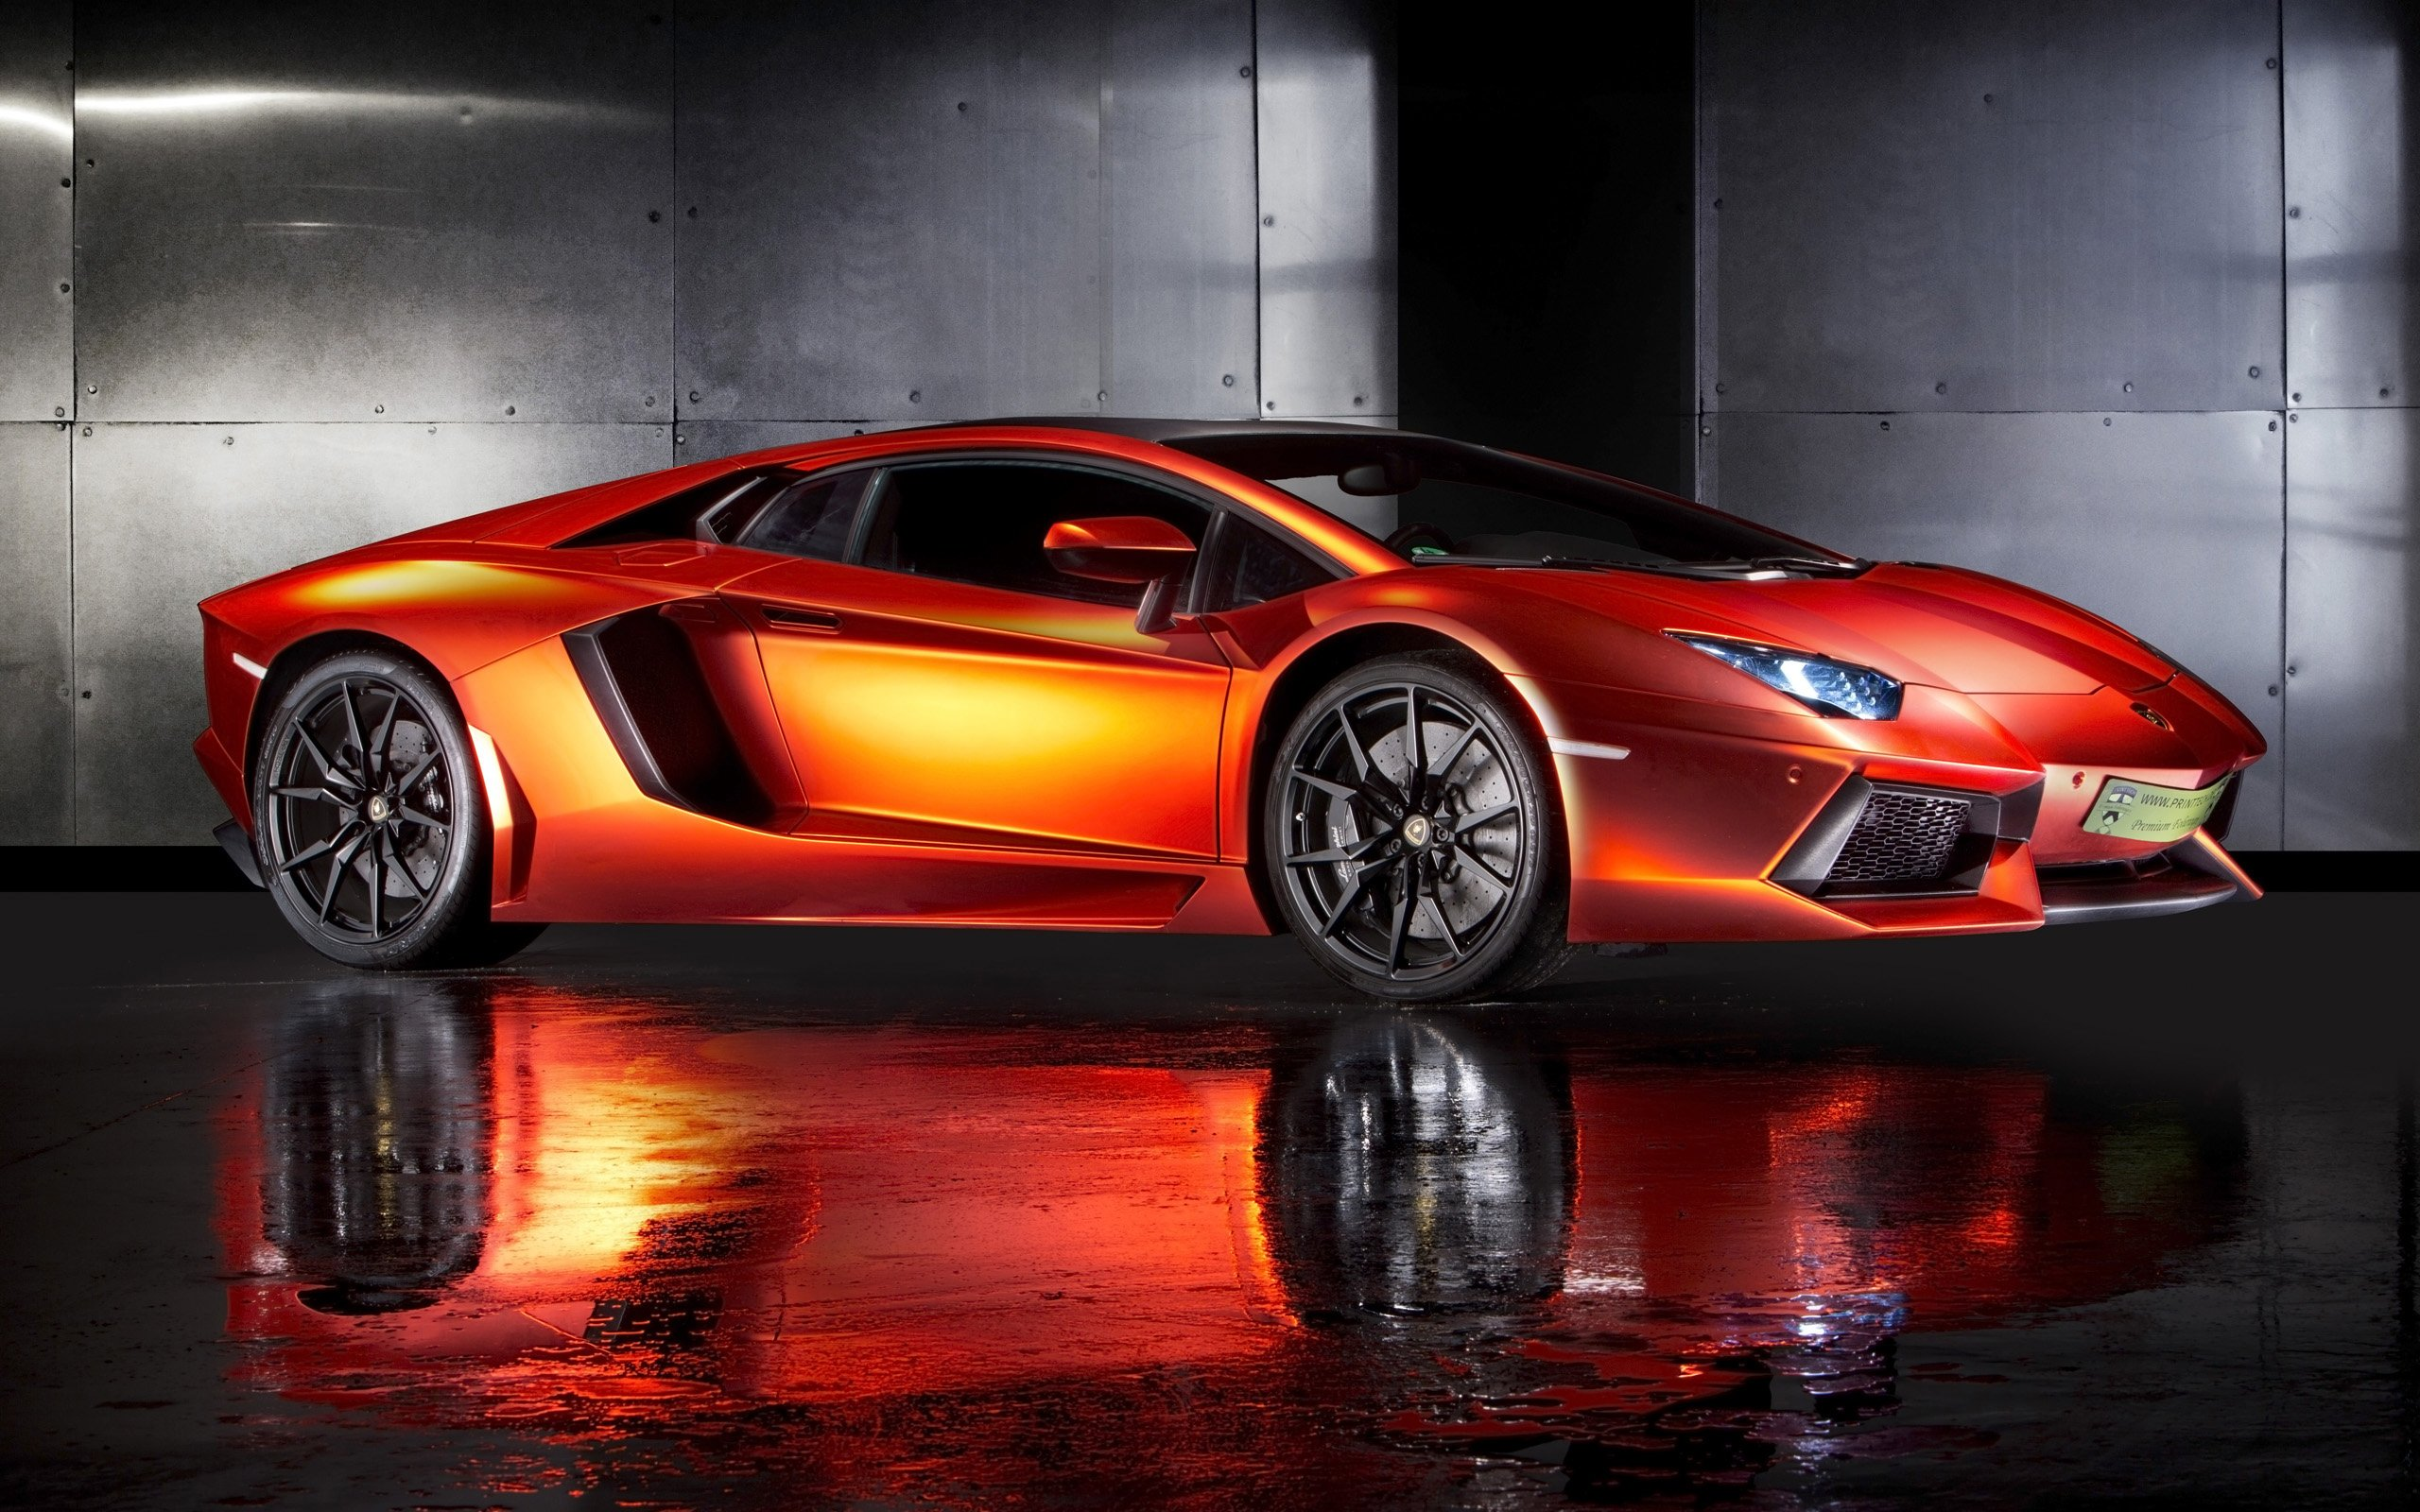 Lamborghini Aventador supercar wallpaper Available in 2560 x 1600 2560x1600